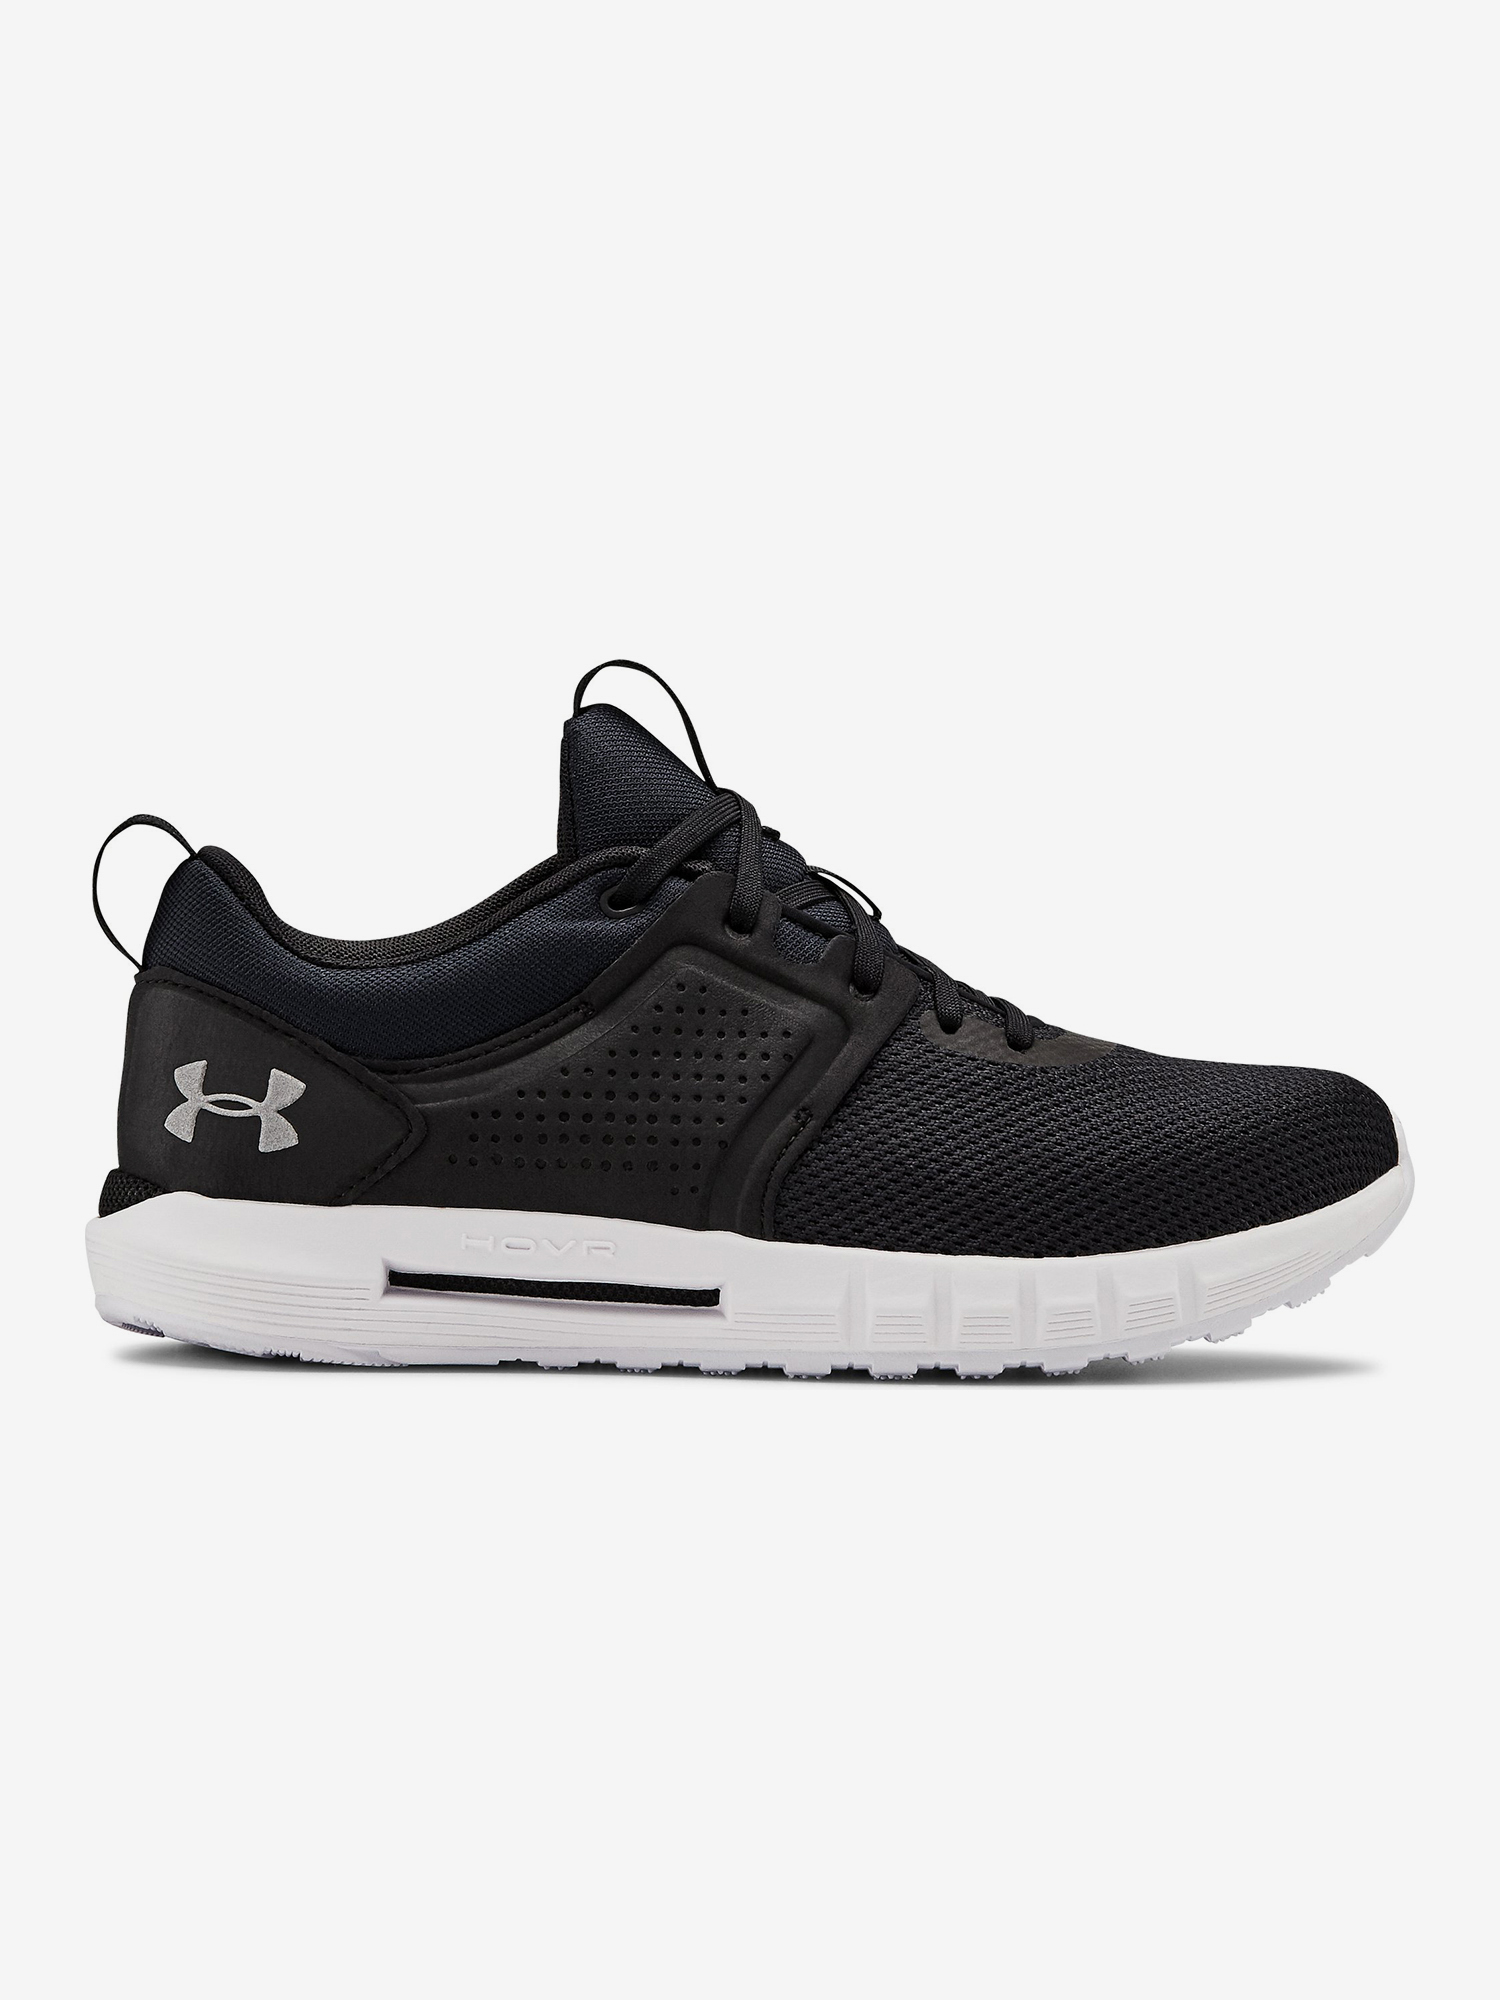 Boty Under Armour W Hovr Ctw-Blk